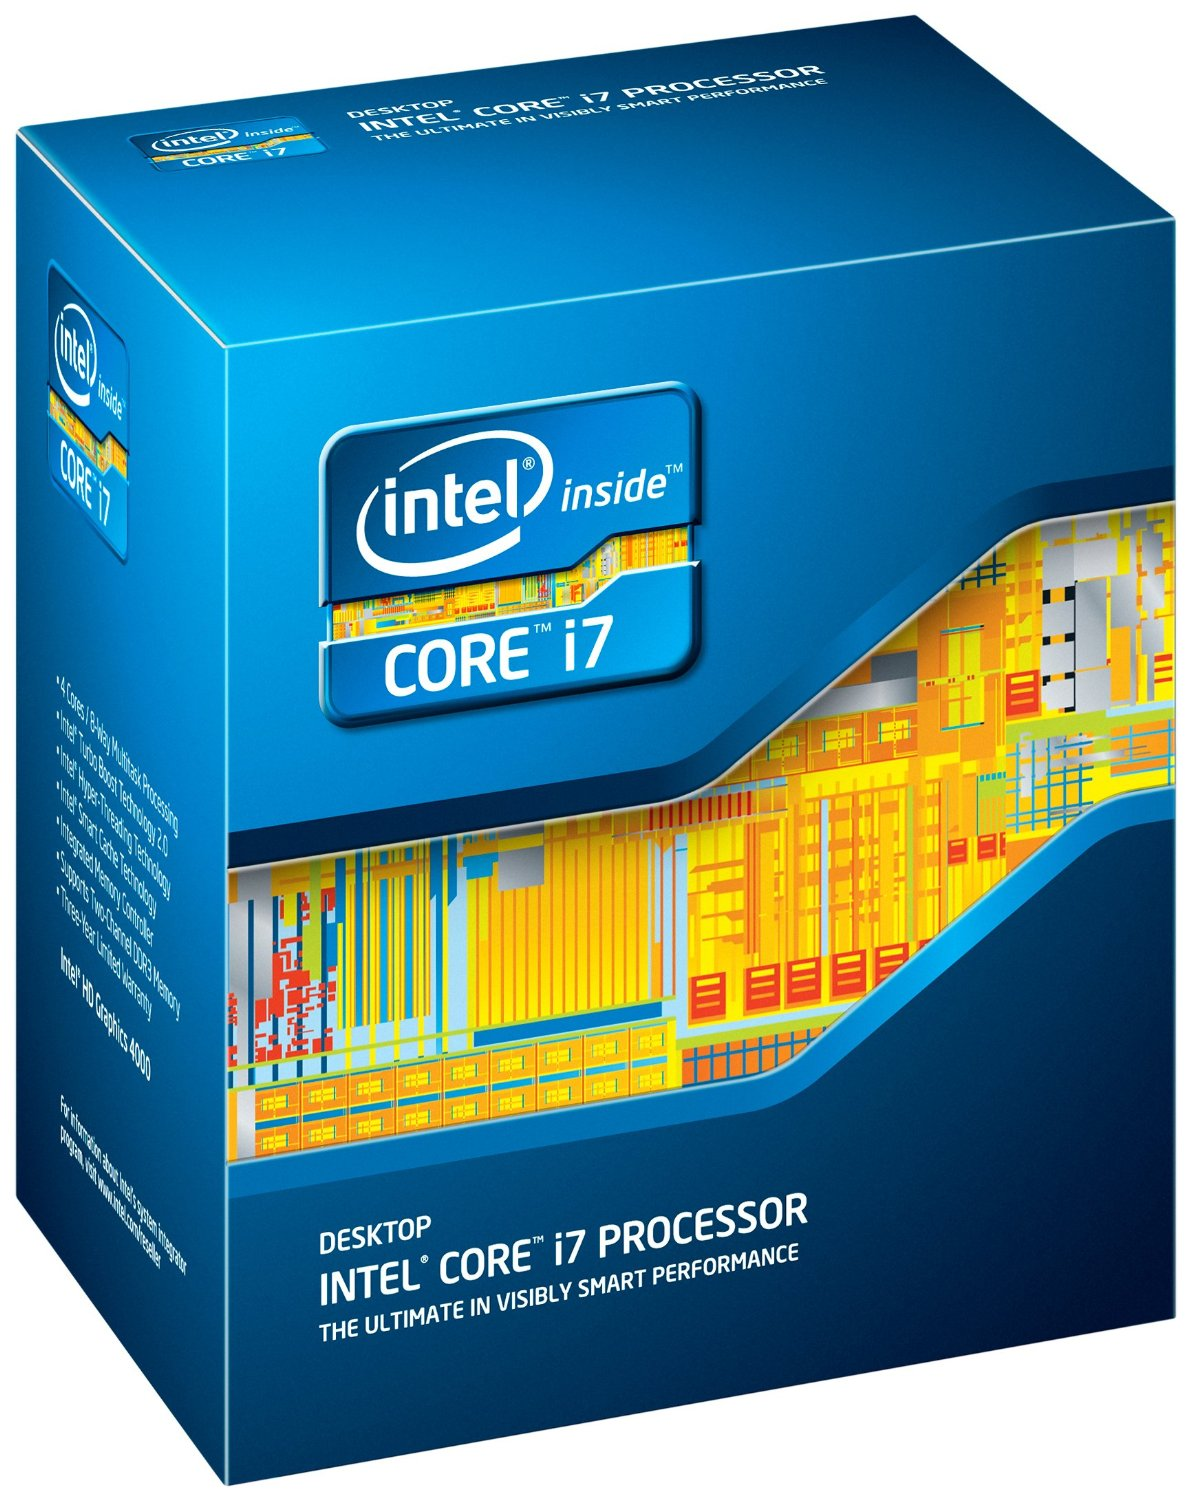 CPU INTEL Core i7-4790K 4GHz 8MB L3 LGA1150, VGA - BOX